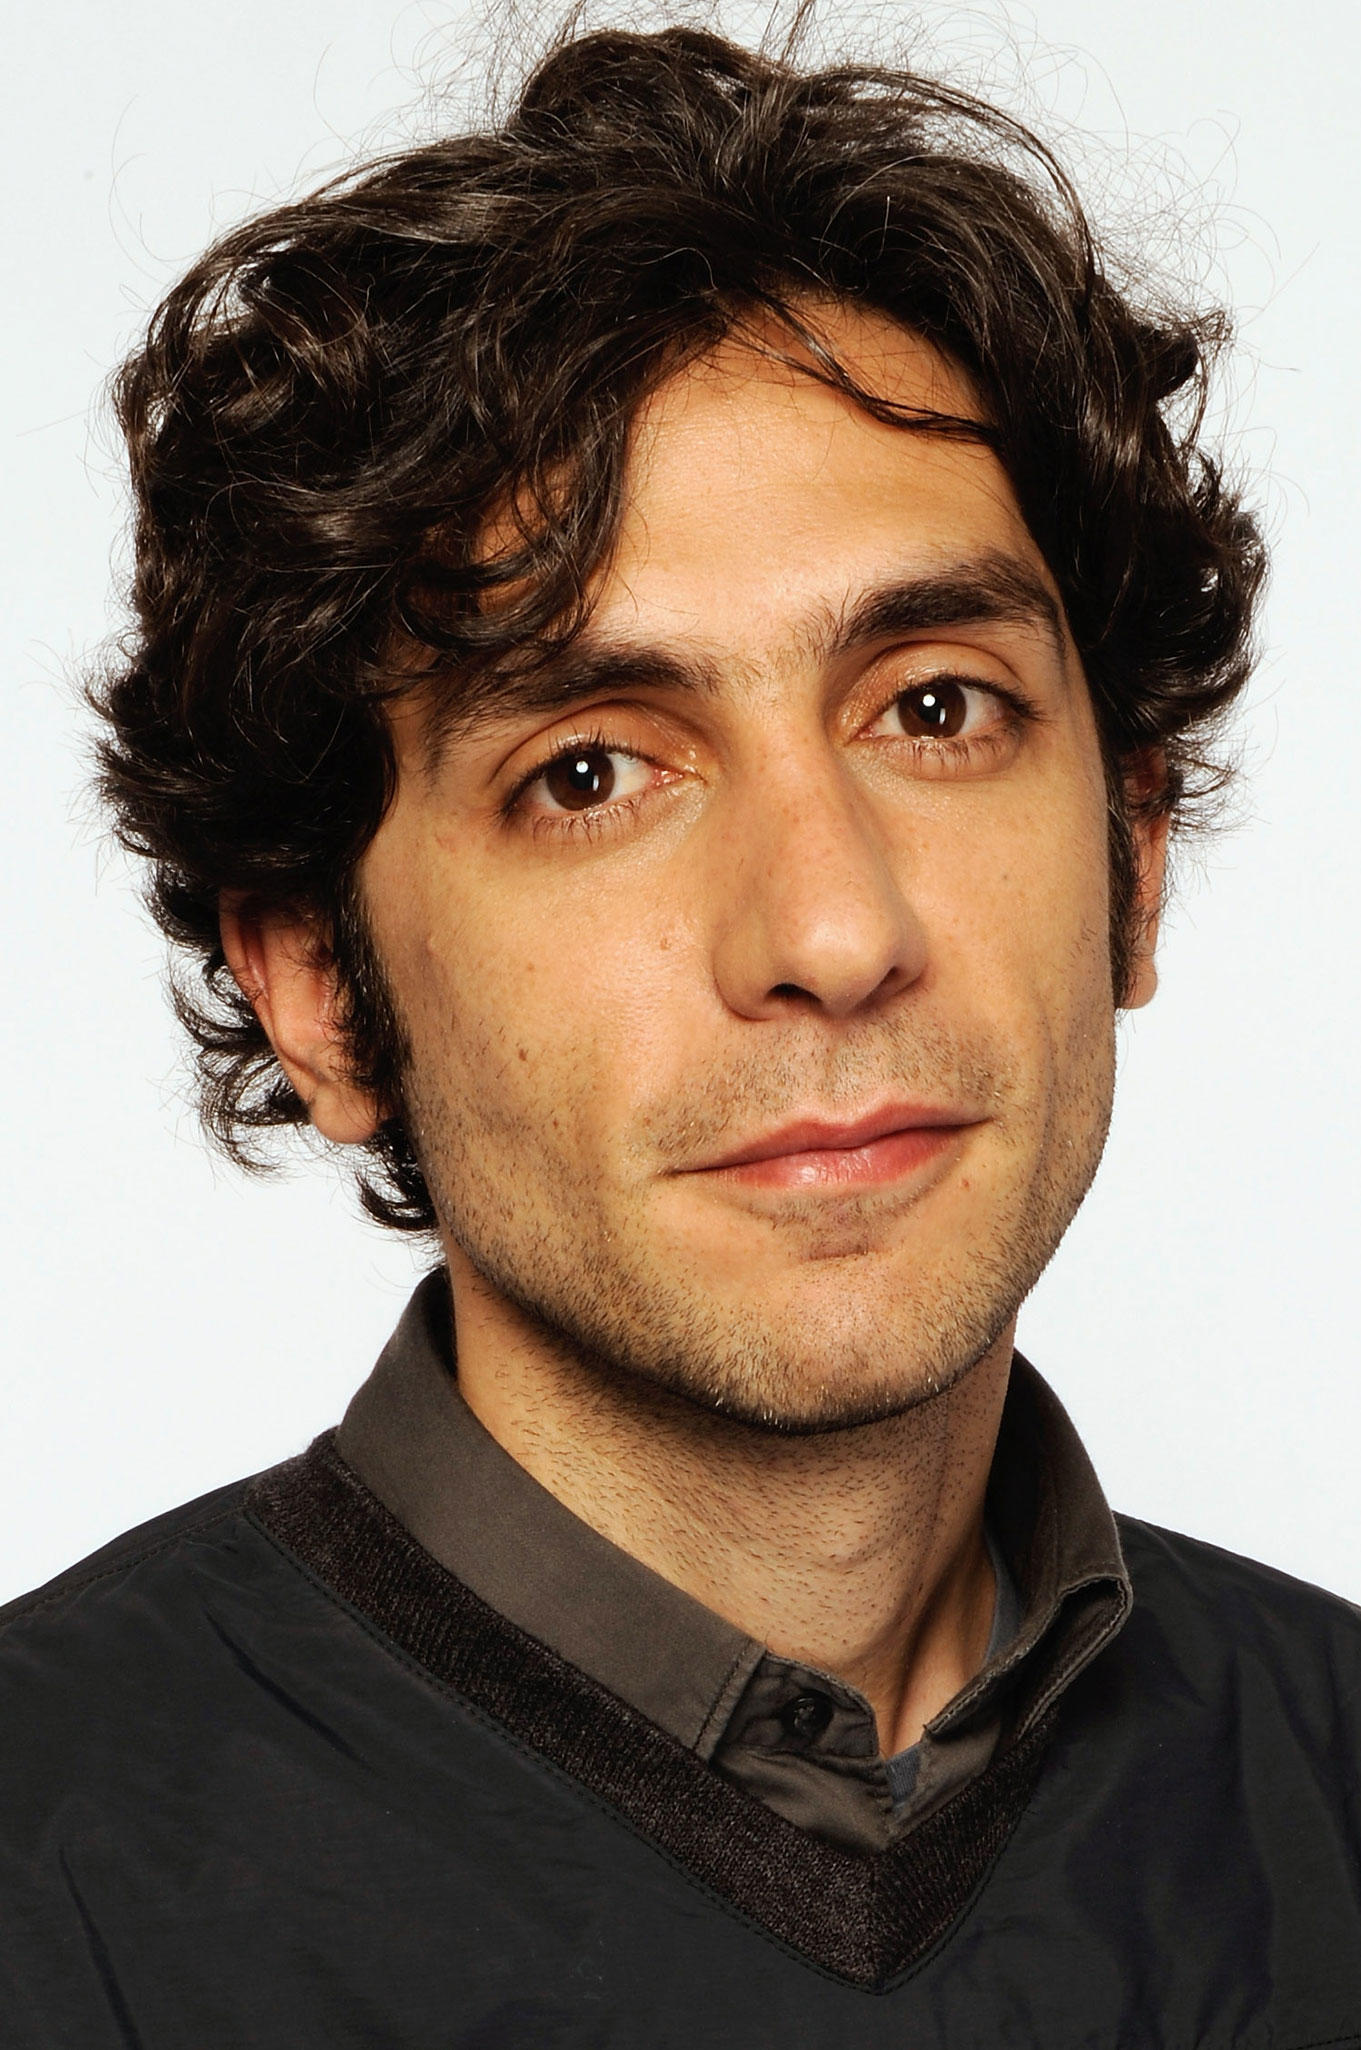 Daniel Benmayor at the Tribeca Film Festival 2009 portrait studio.